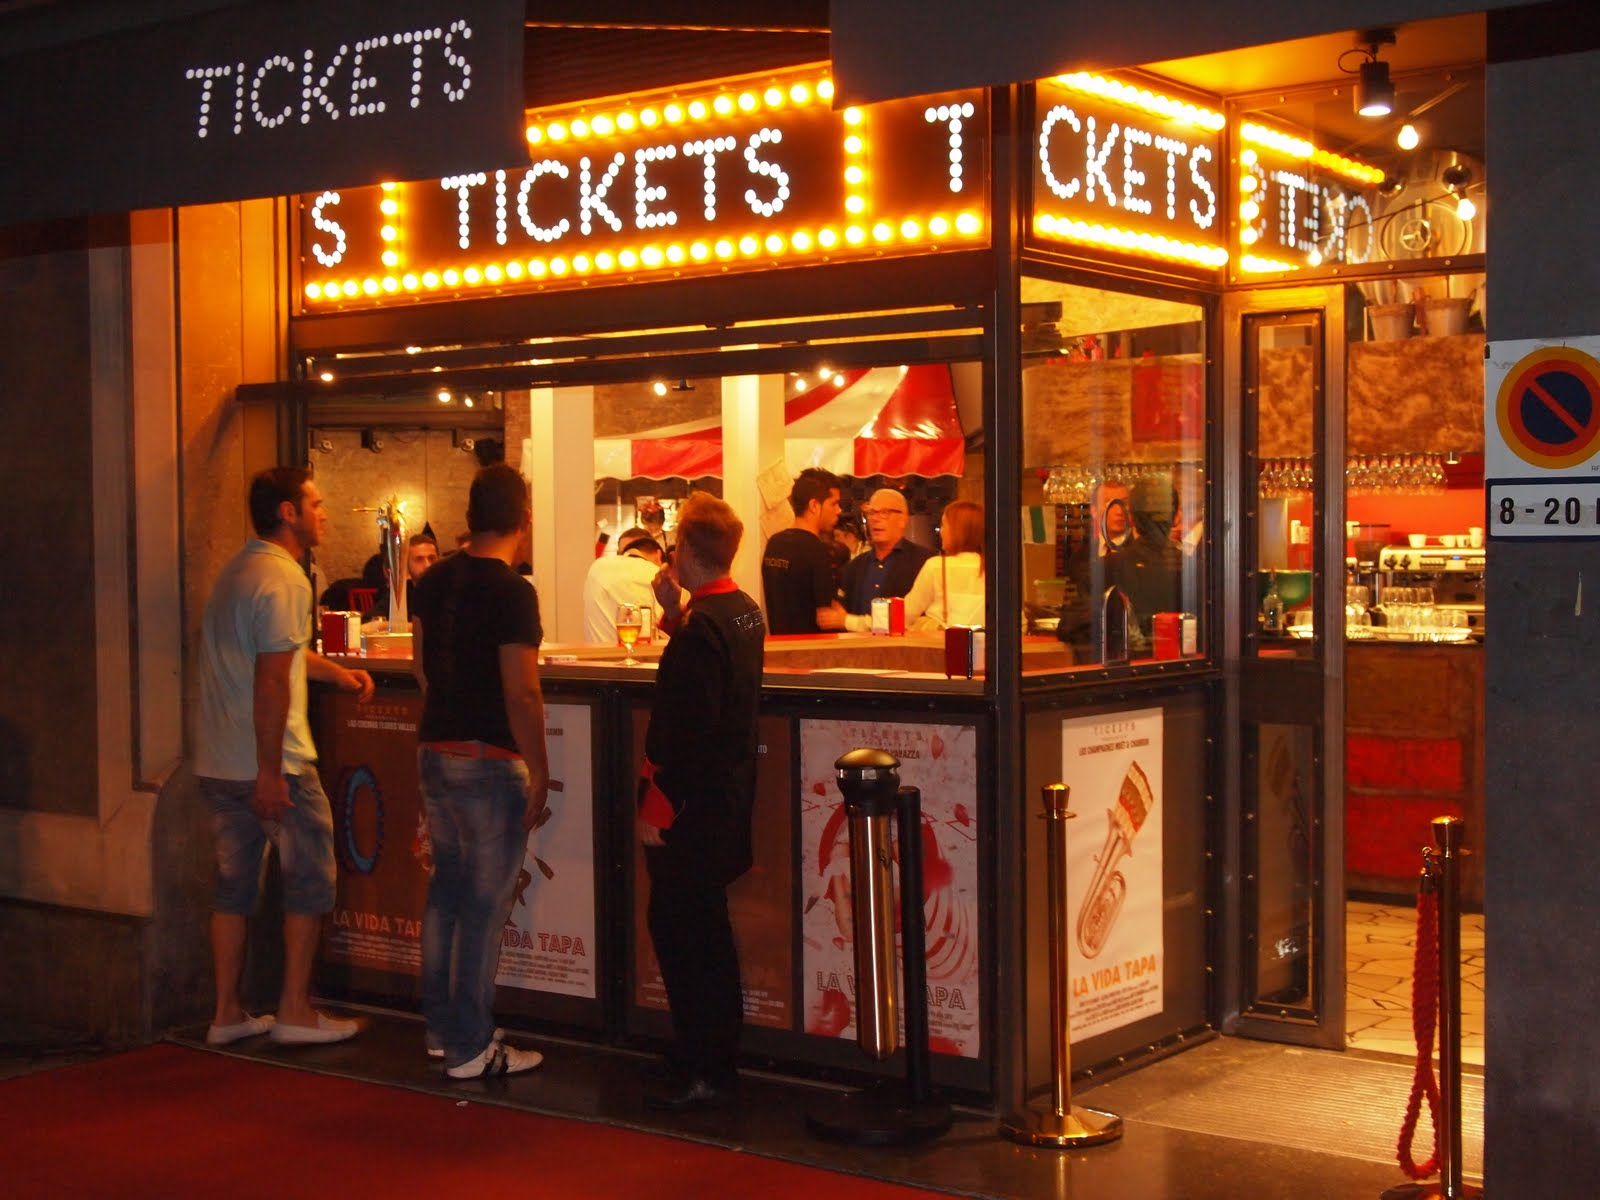 Tickets Tickets Bar: Un tapeo de lujo